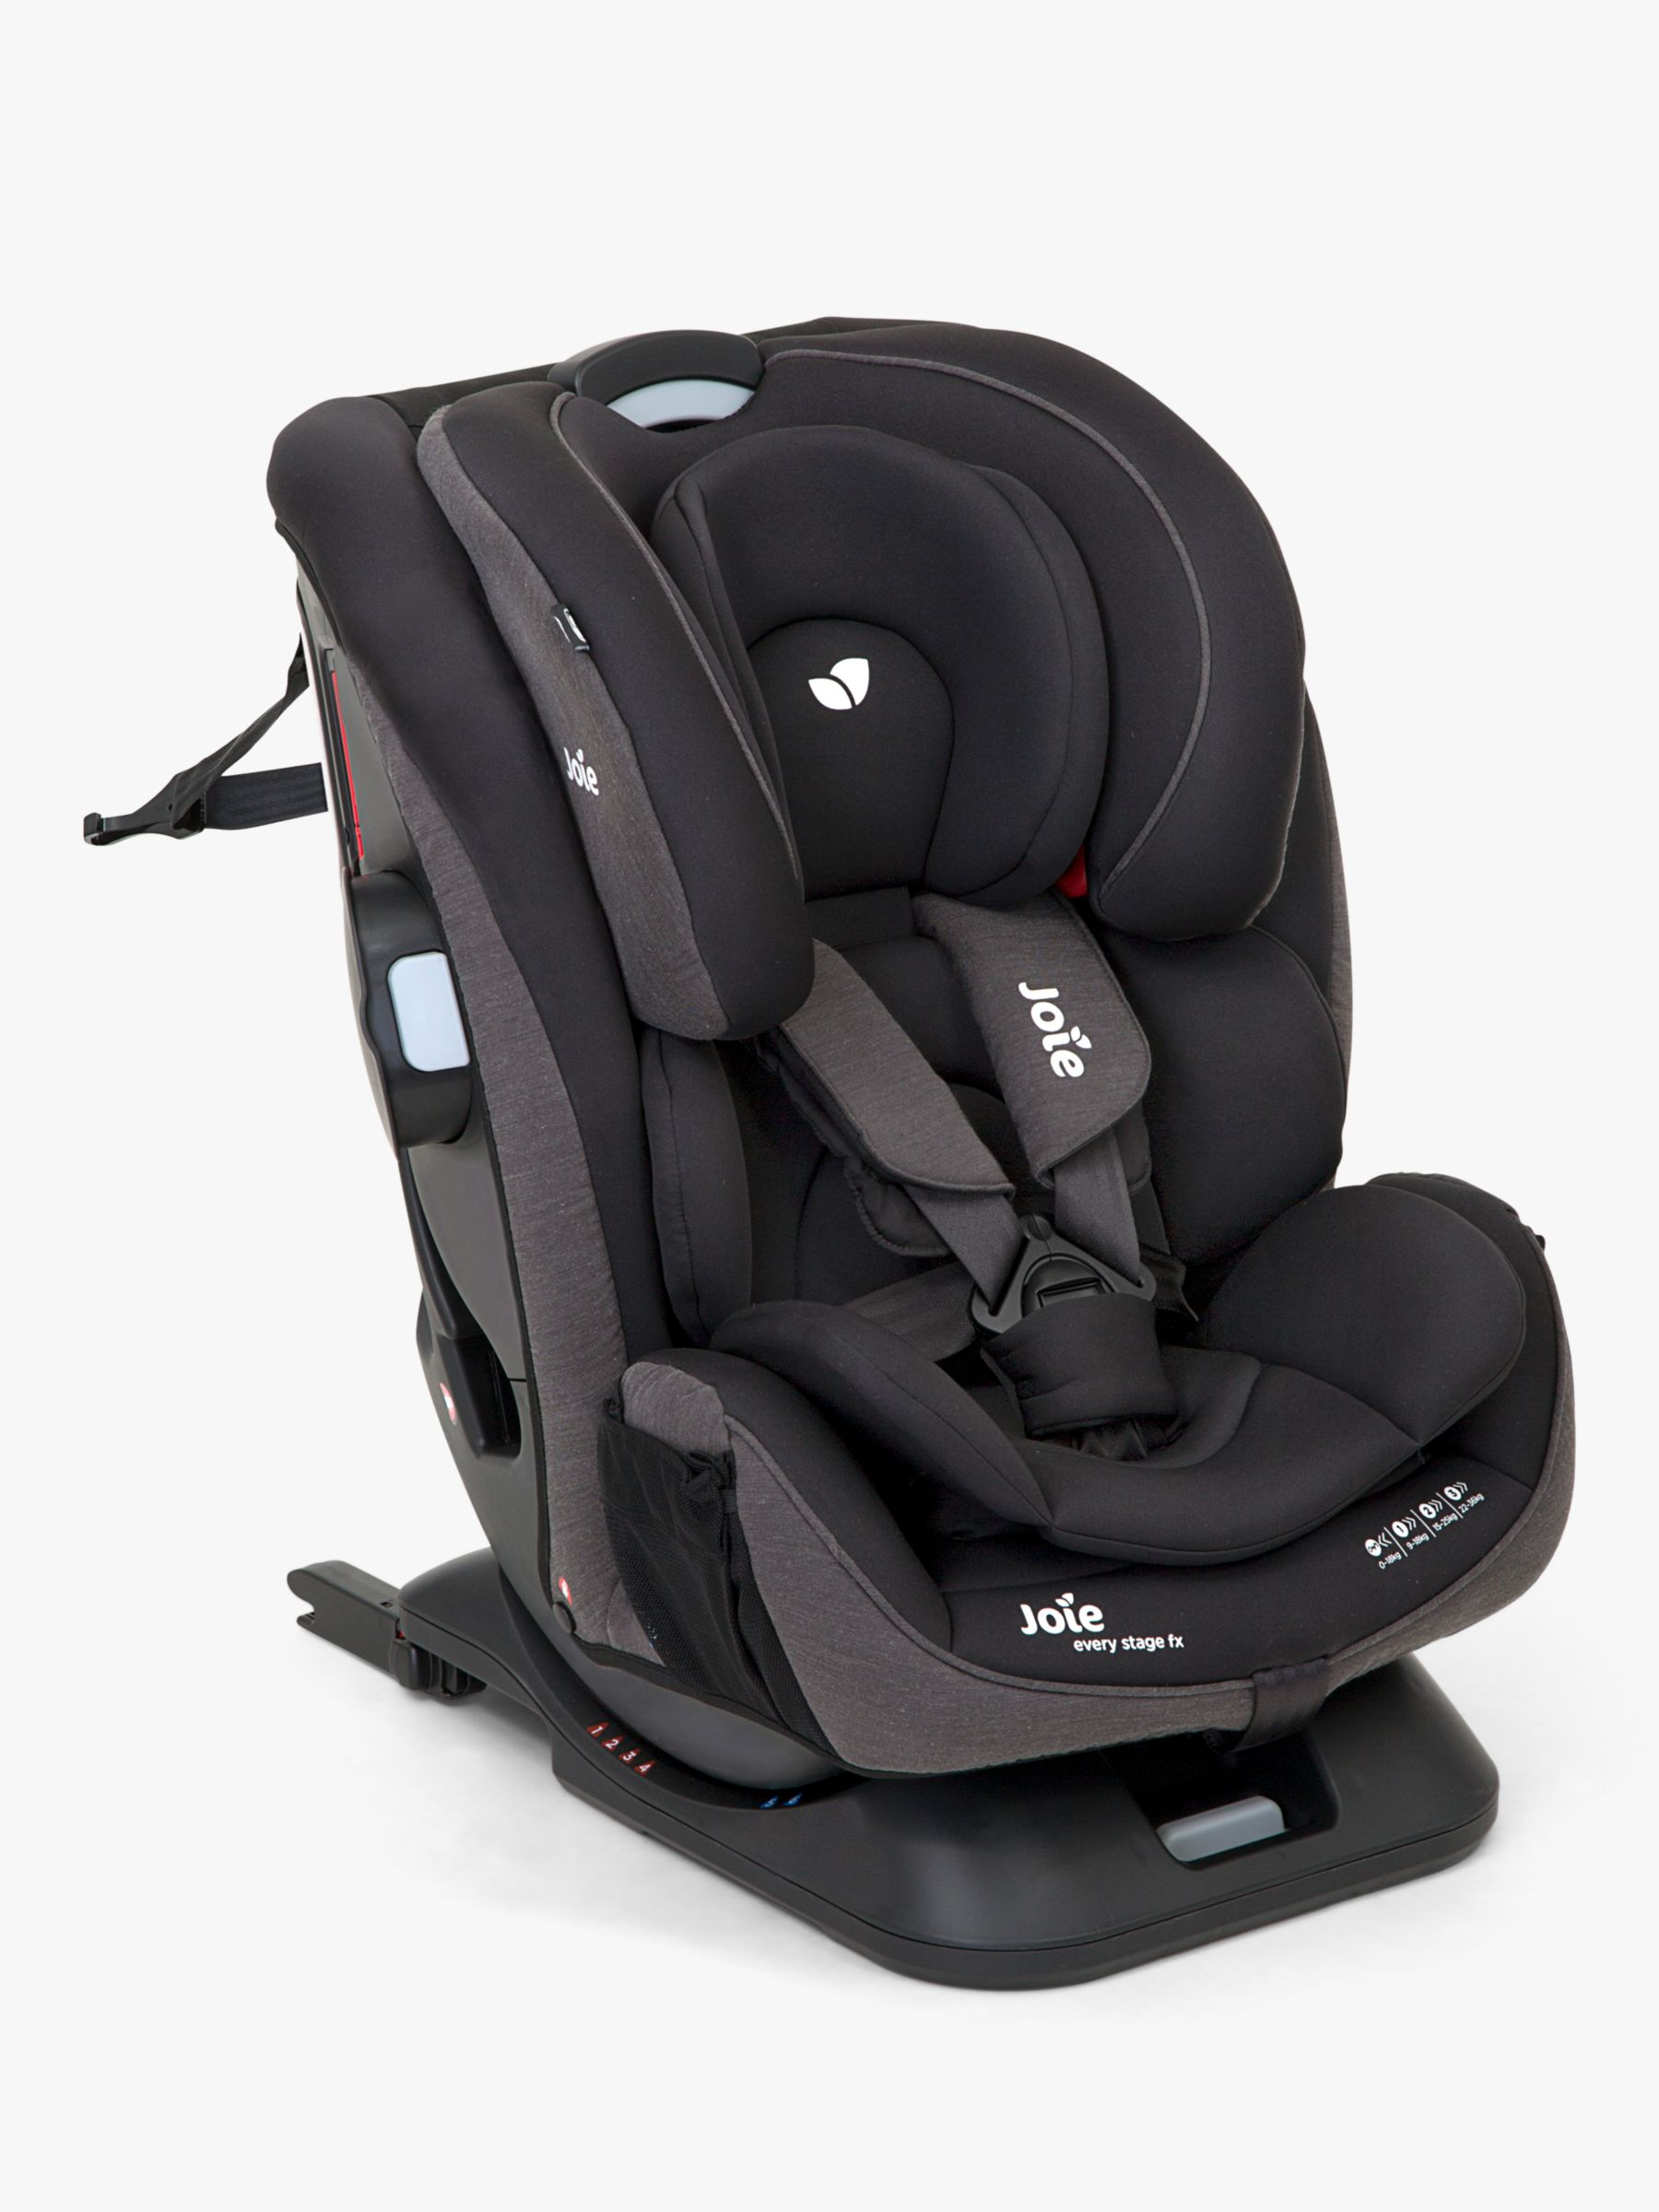 Joie Baby Joie Baby Every Stage FX Group 0+/1/2/3 Car Seat, Coal